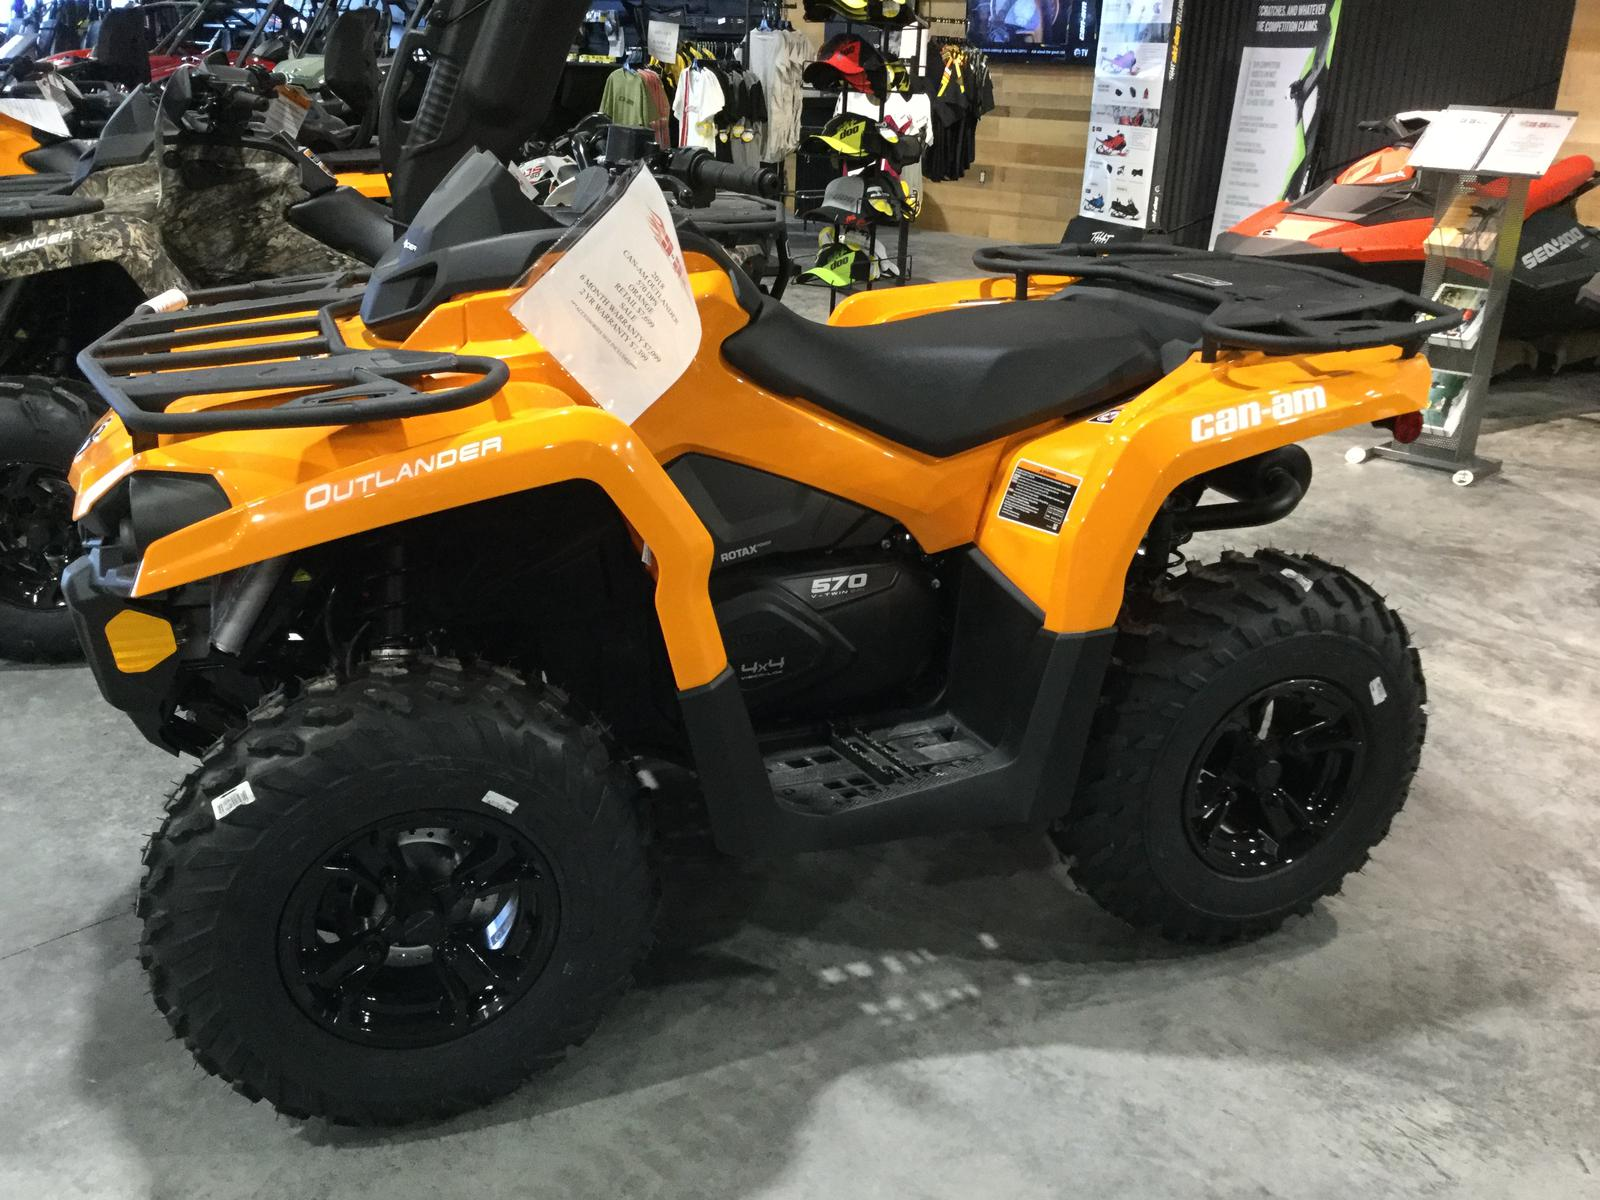 2018 Can Am OUTLANDER DPS 570 for sale in Ronan MT